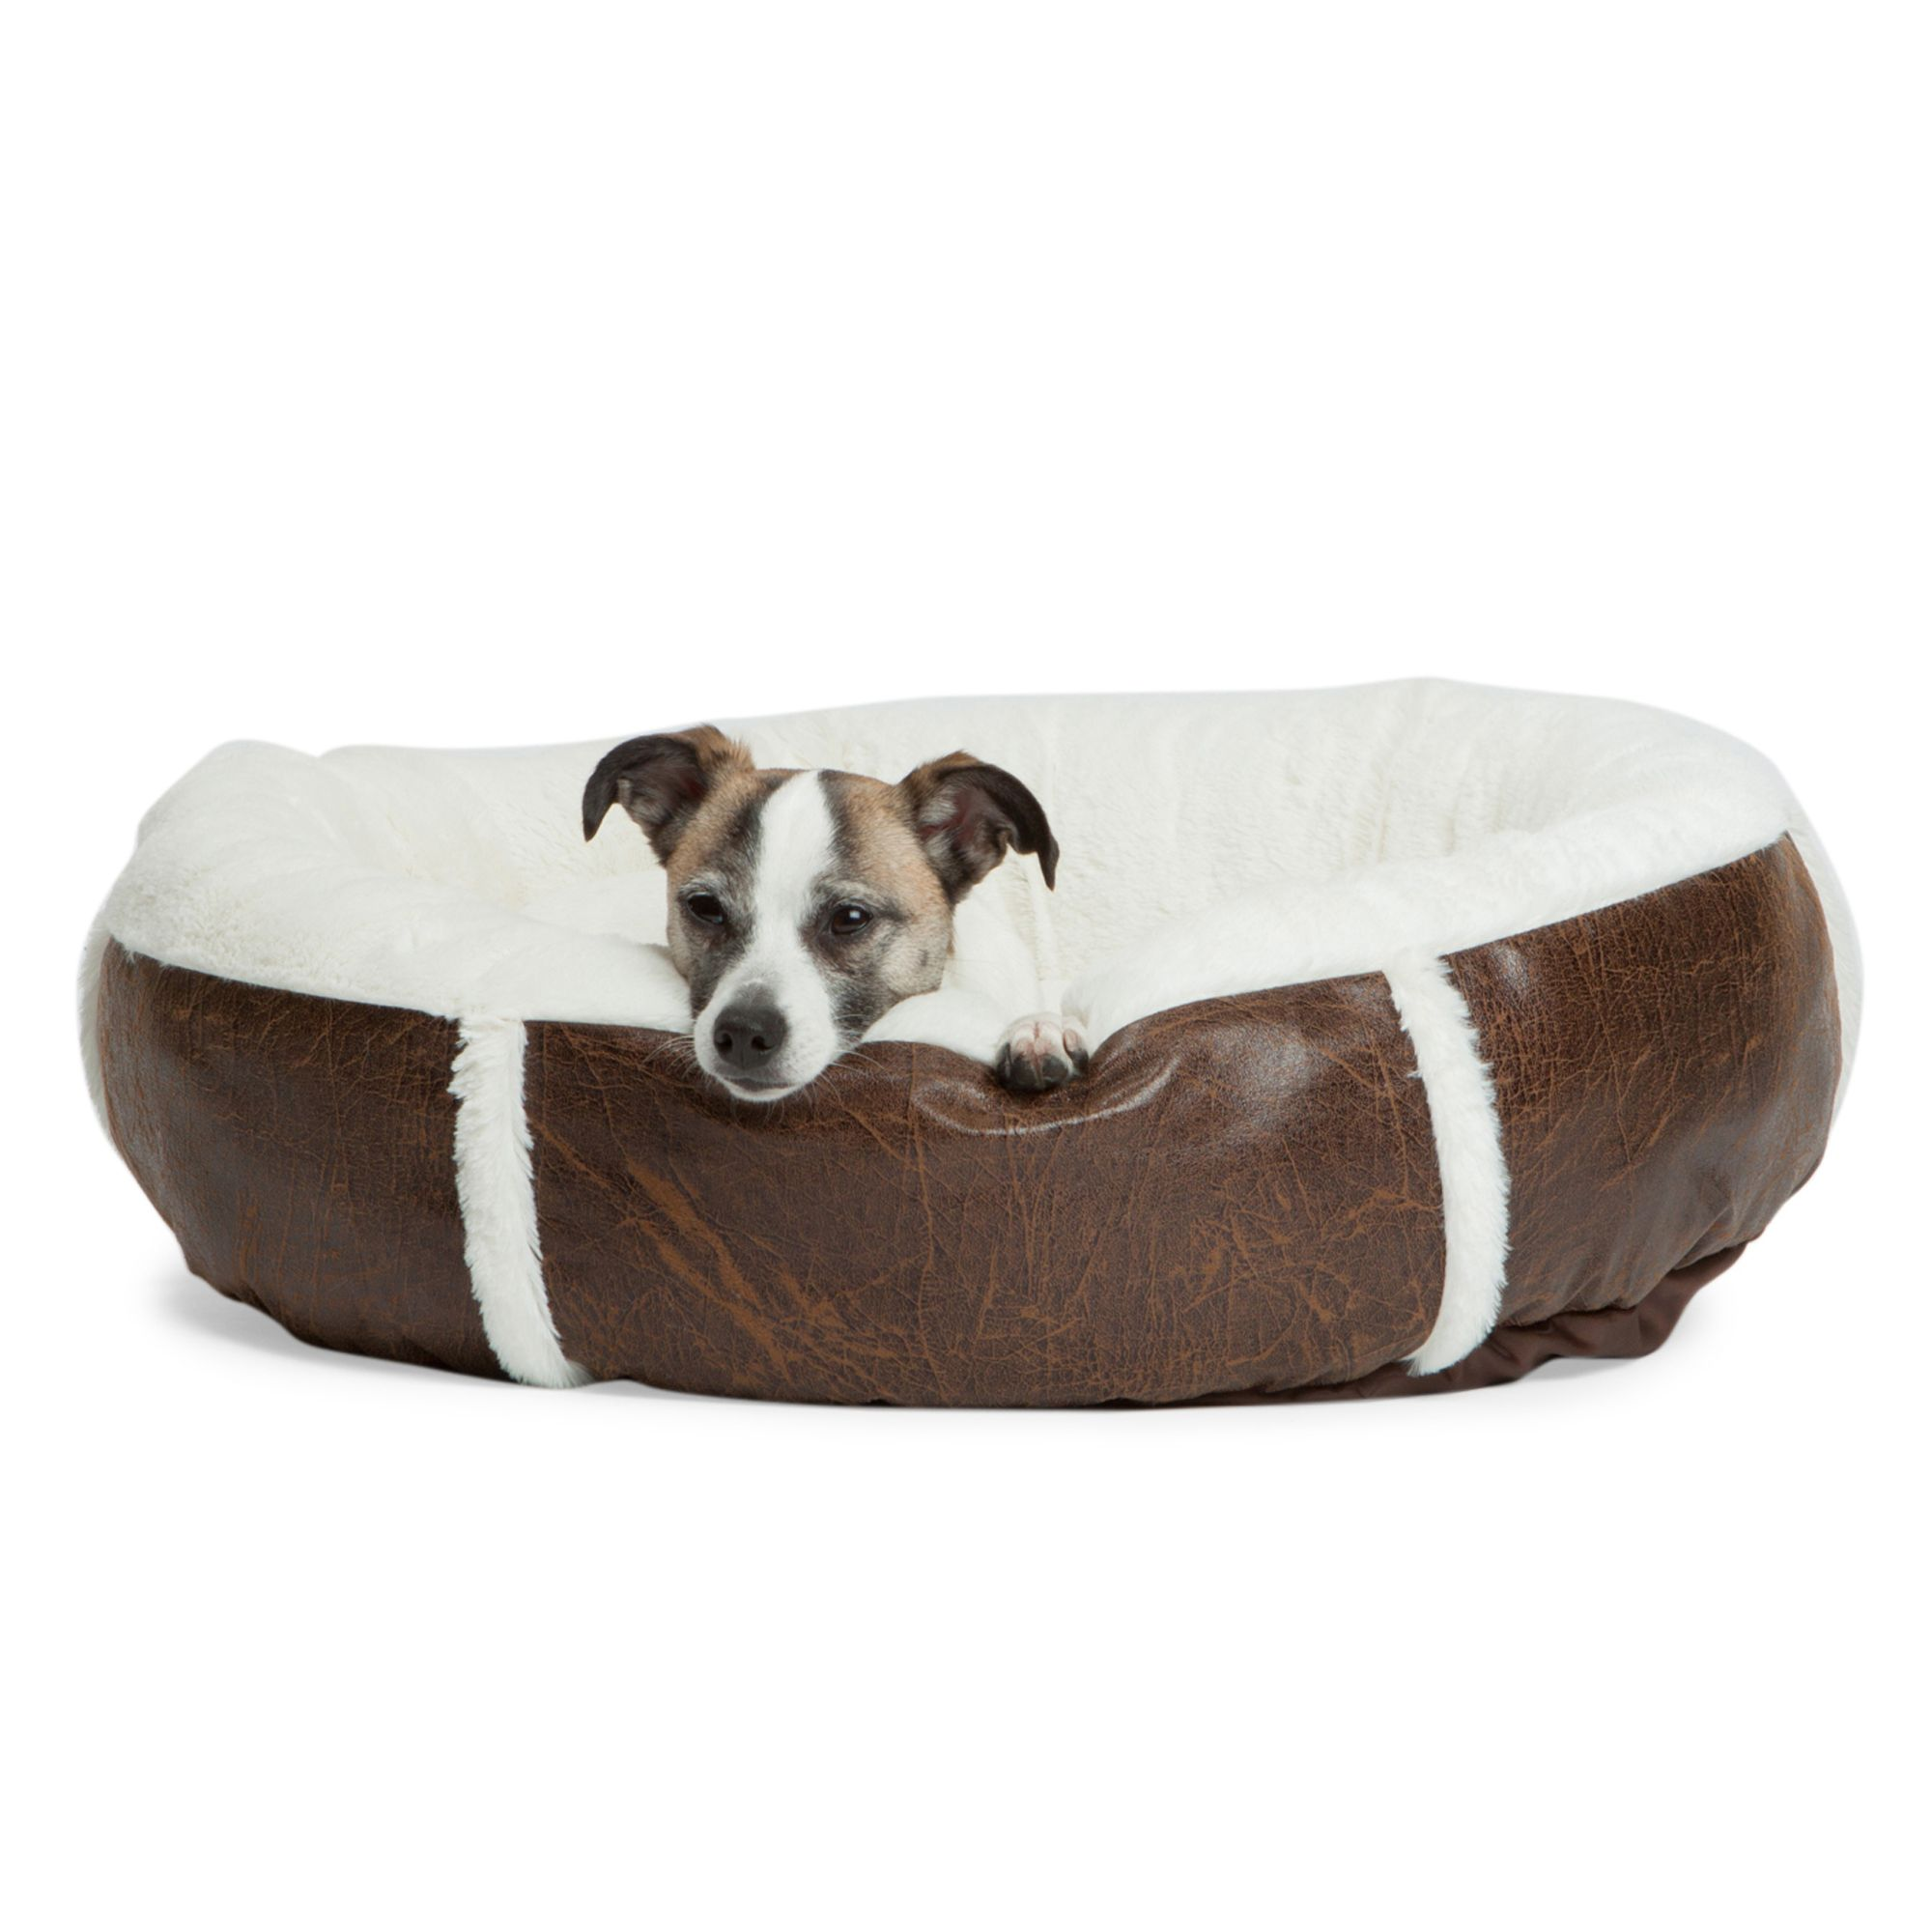 Best Friends By Sheri Bumper Bolster Dog Bed Size 24l X 24w X 7h